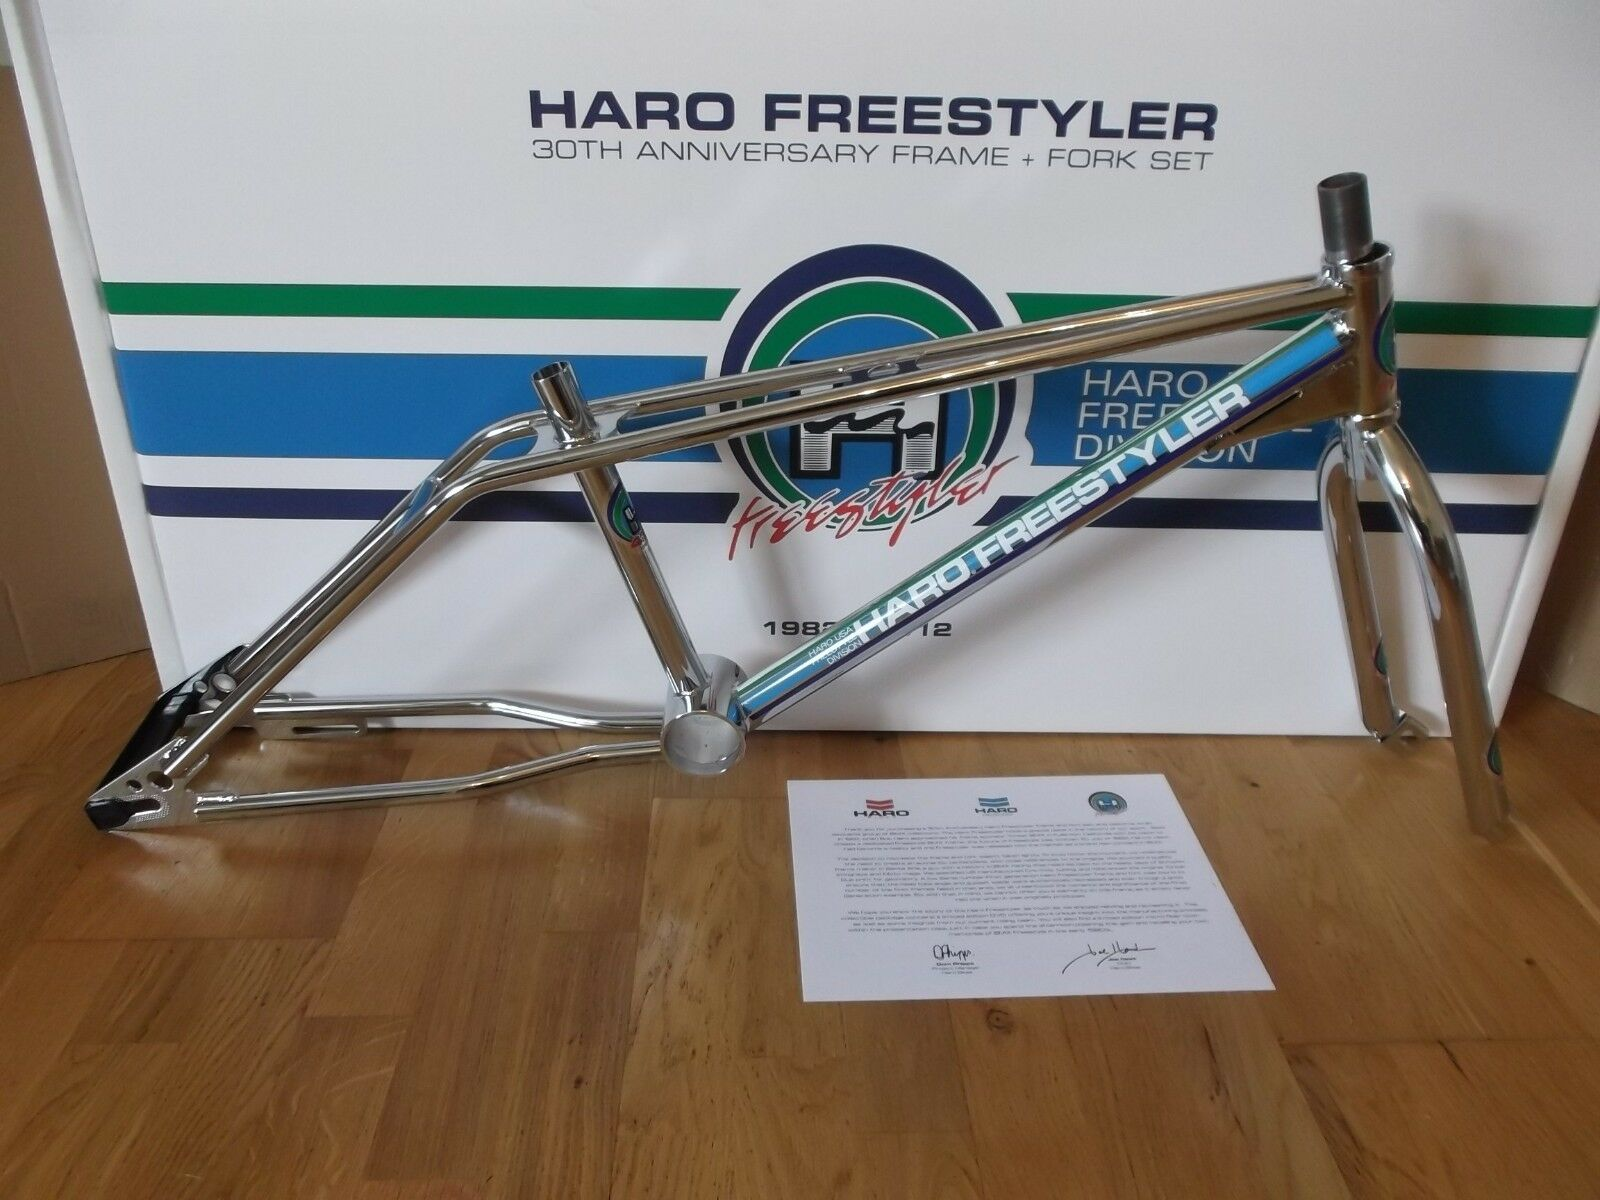 NEW HARO FREESTYLER GEN 1 FRAME SET IN BOX CHROME 2012 US MADE RE ISSUE